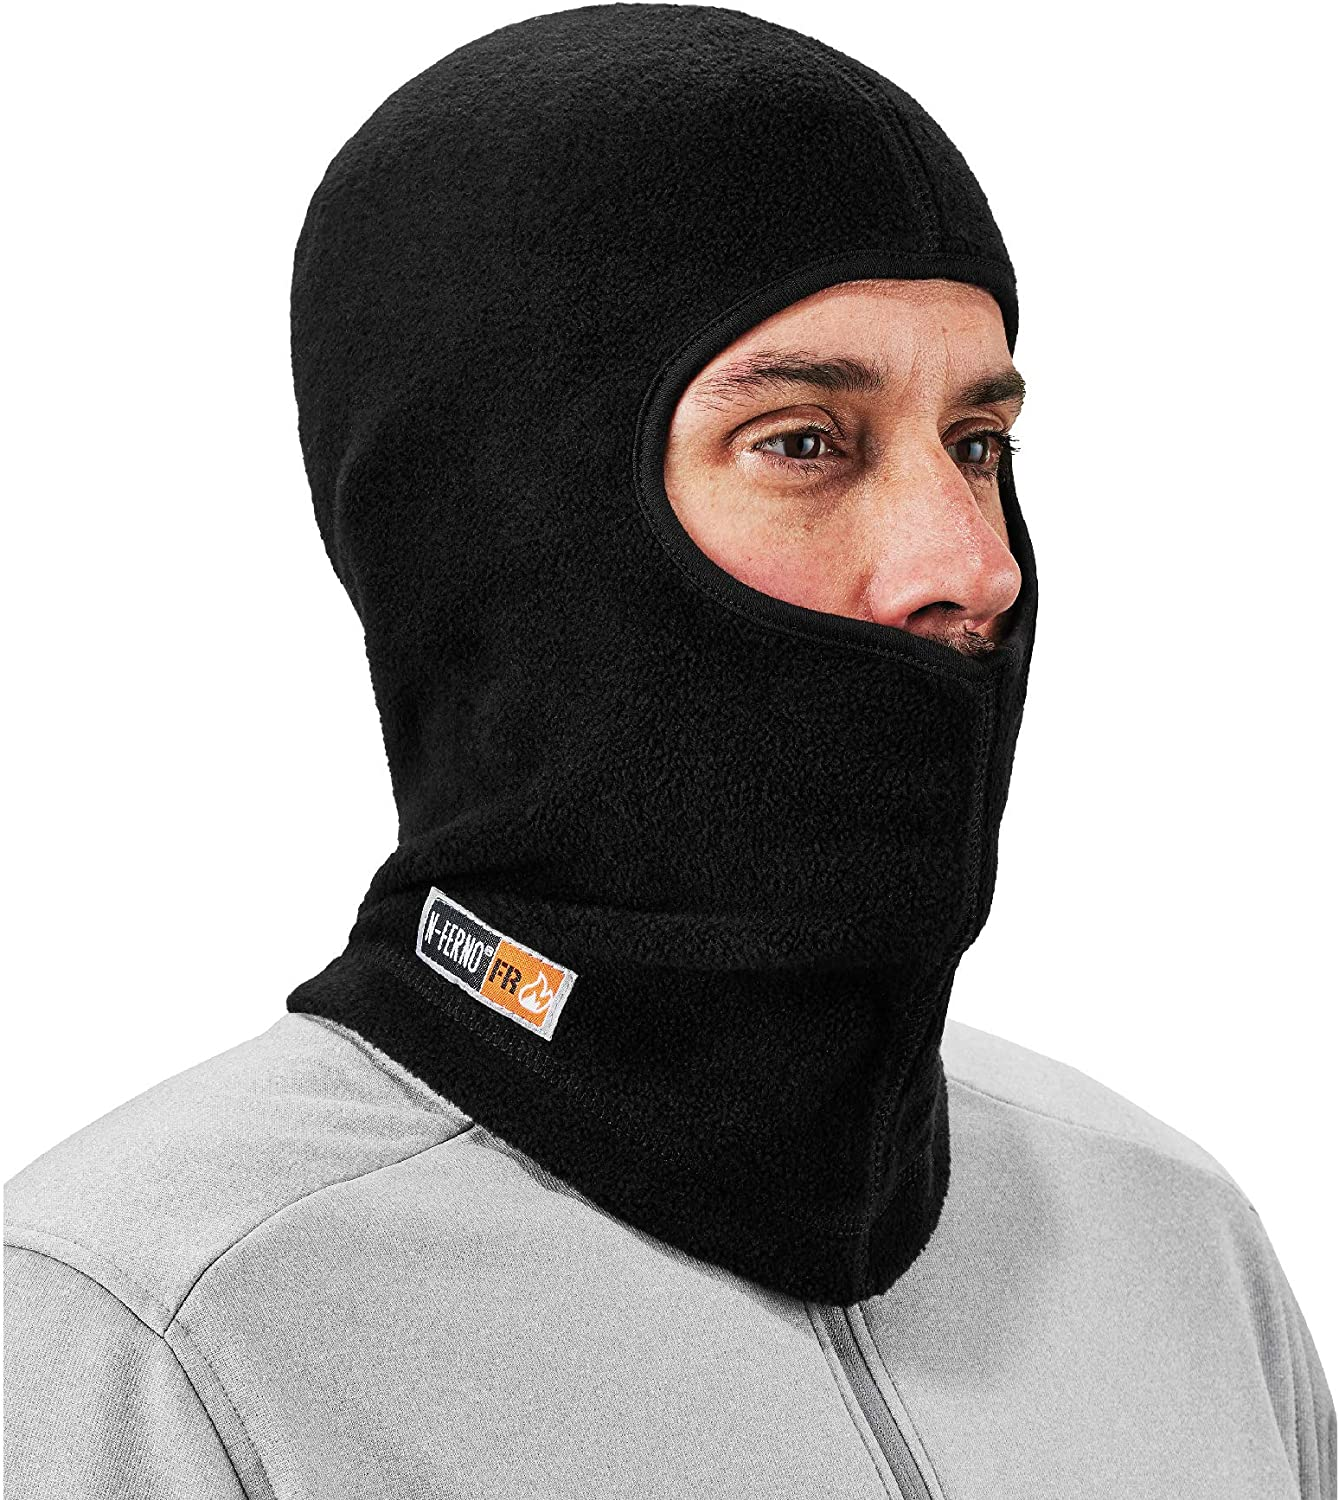 FR Rated Balaclava Winter Face Fire Mask Ultra-Cheap Deals Mod Thermal Resistant depot